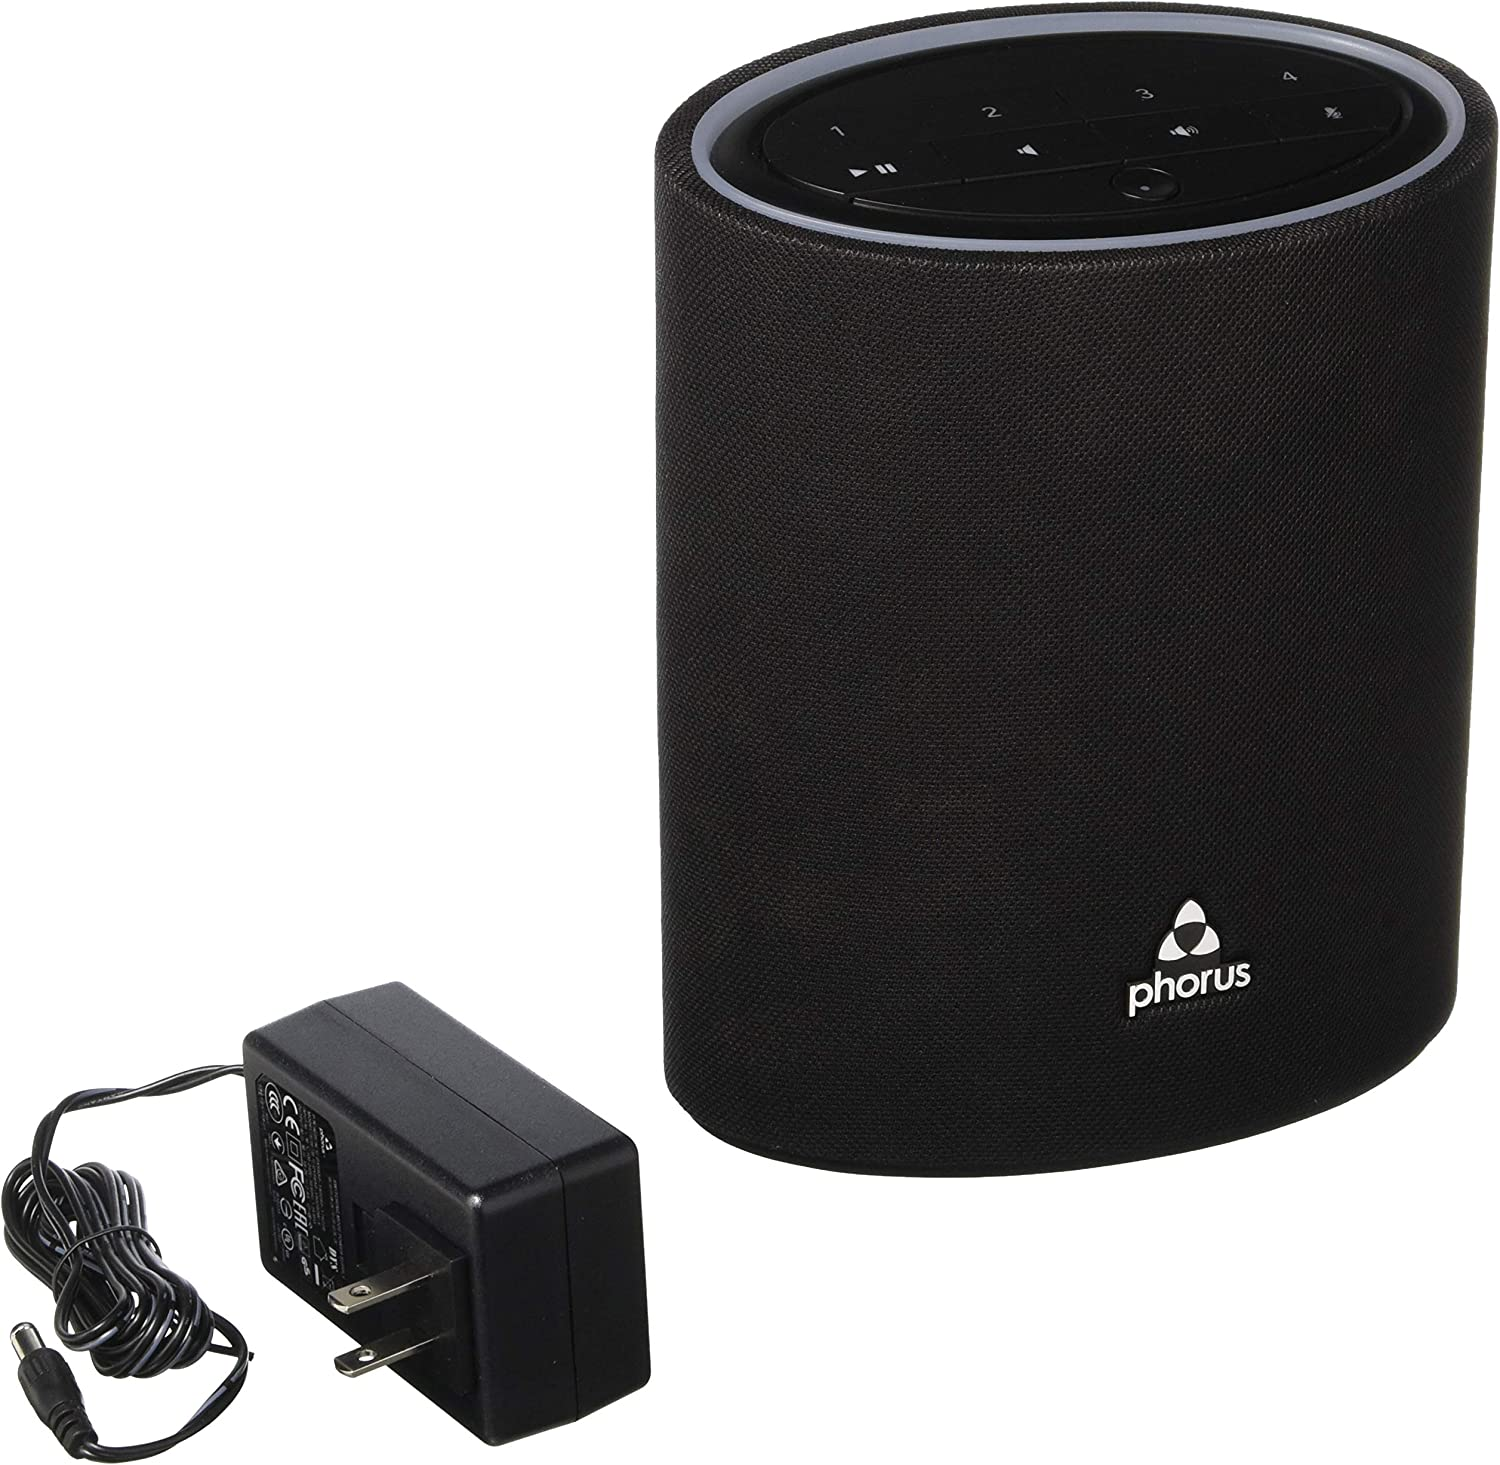 Phorus PS10 Speaker with Alexa and Play-Fi Wireless Streaming 81fRUgoMW4L